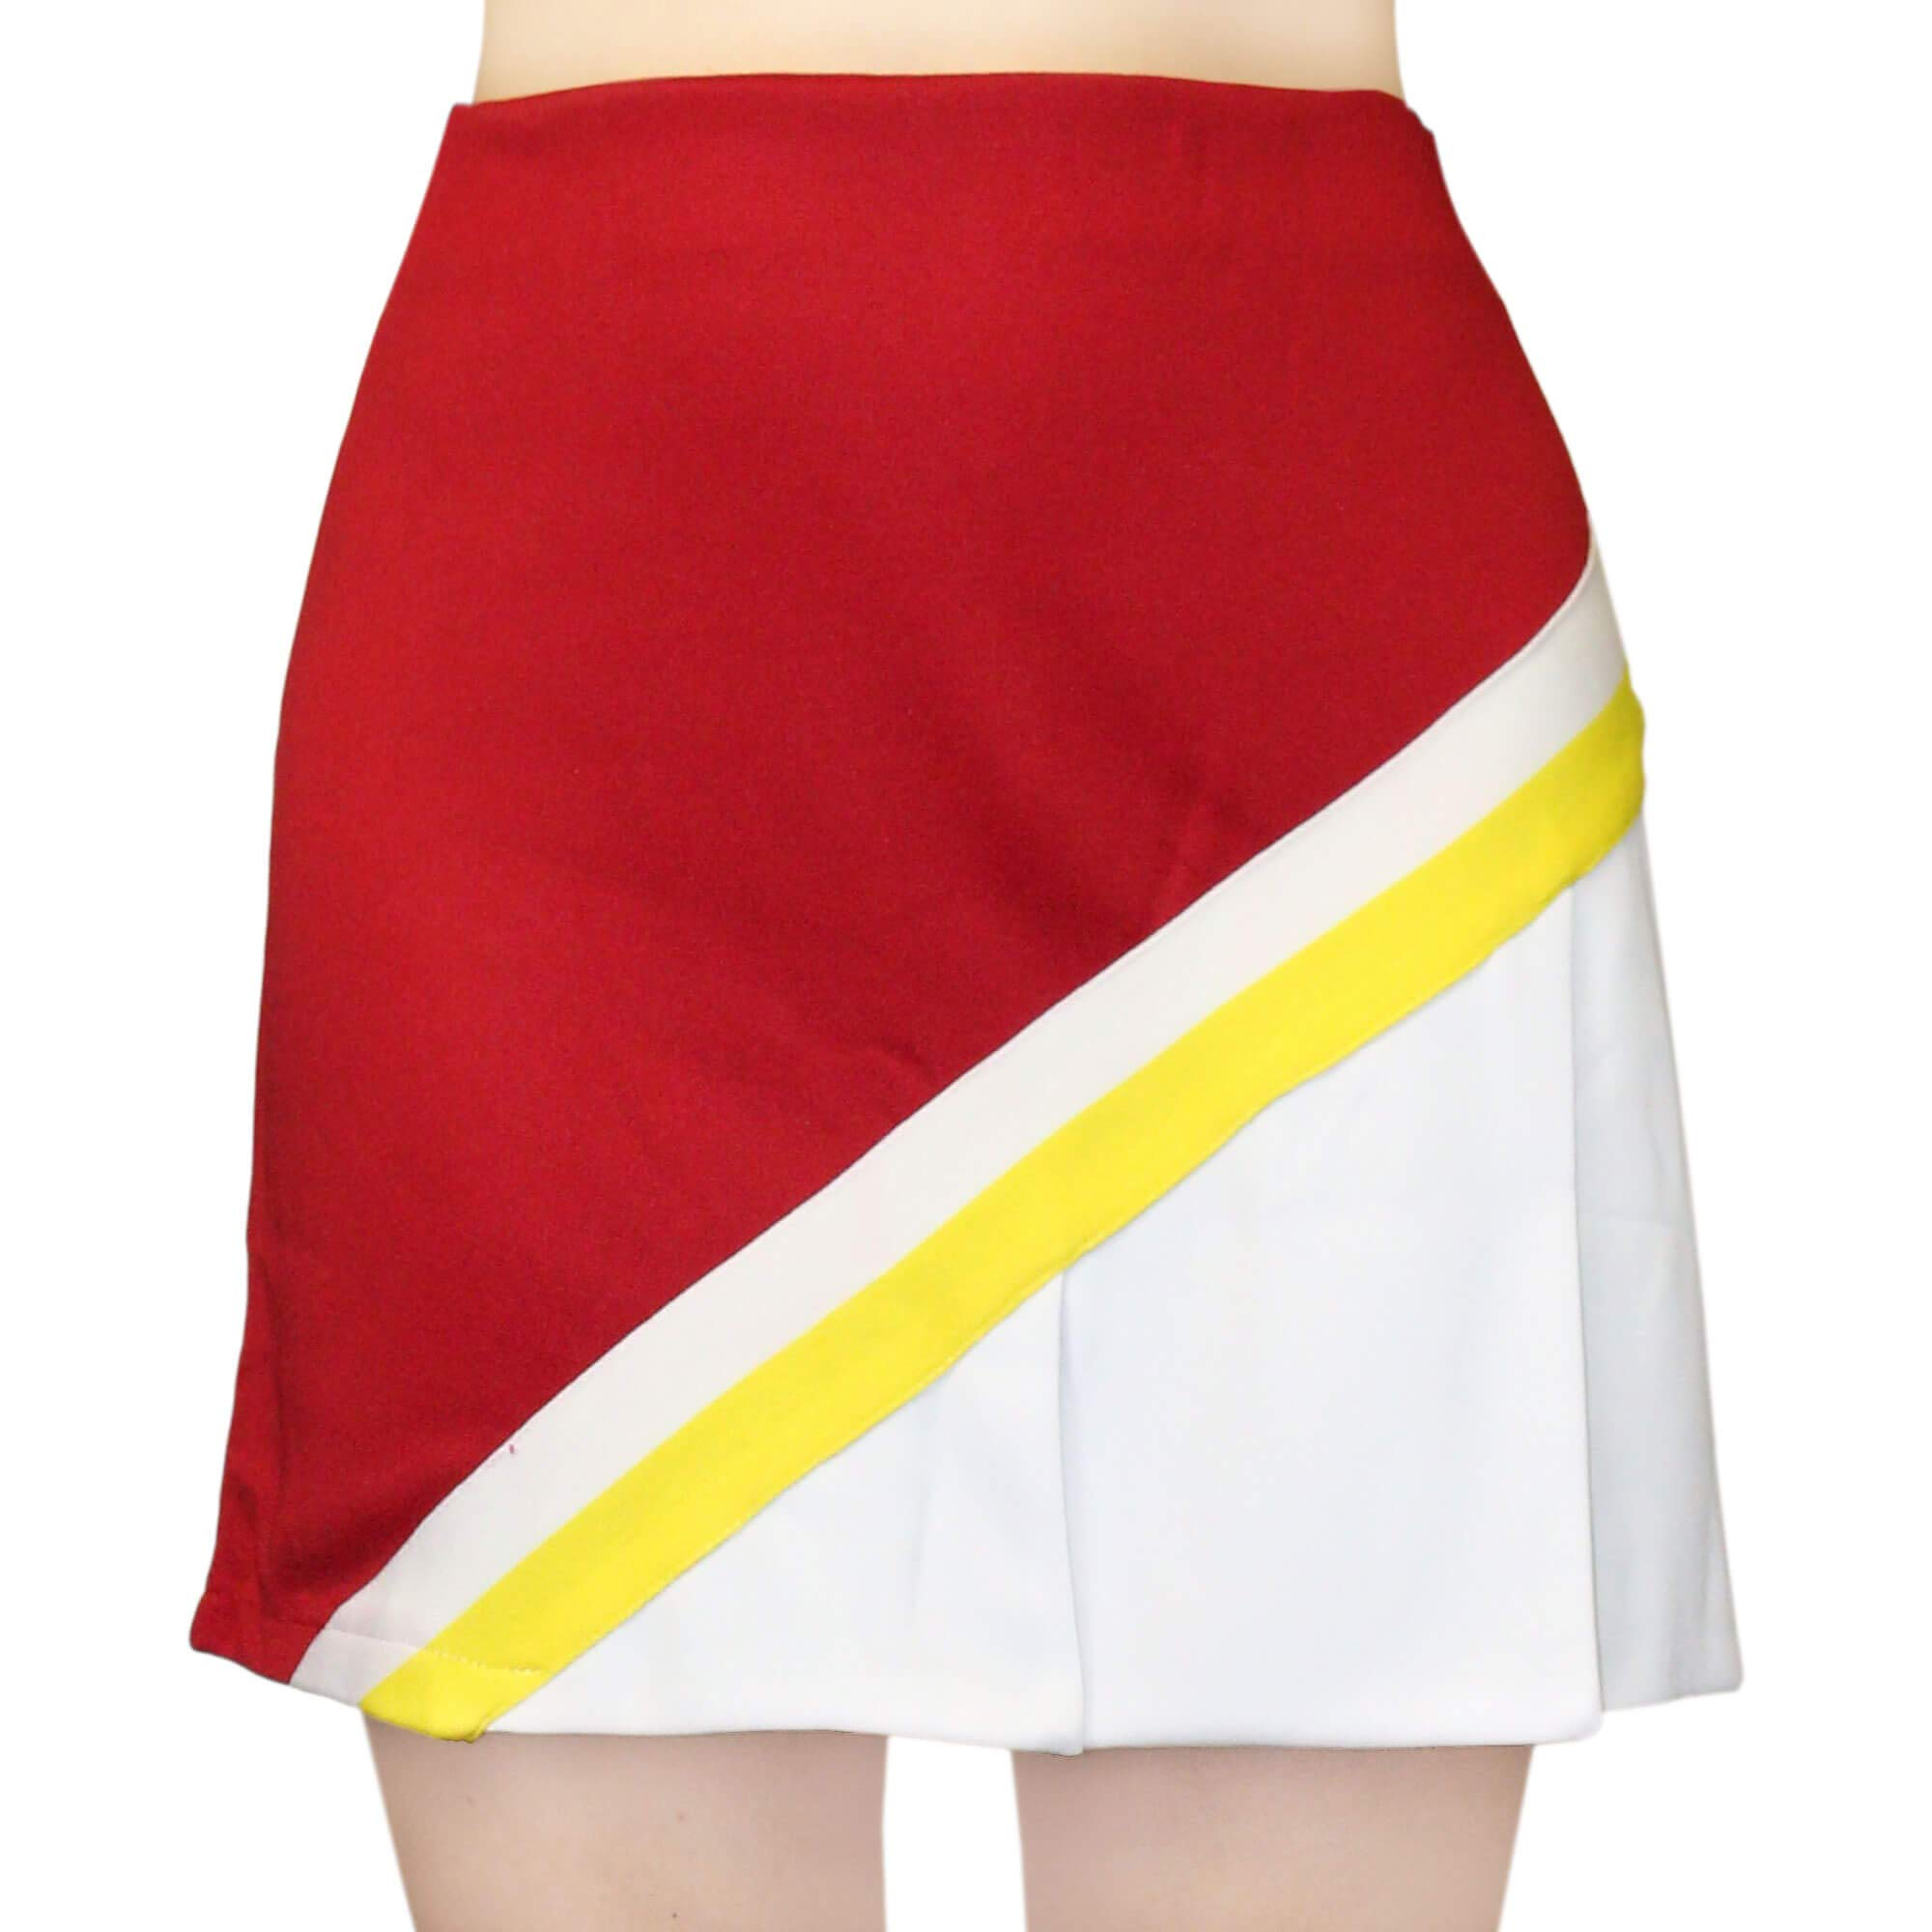 Danzcue Adult Cheerleading A-Line Pleat Skirt, Scarlet-White, Large by Danzcue